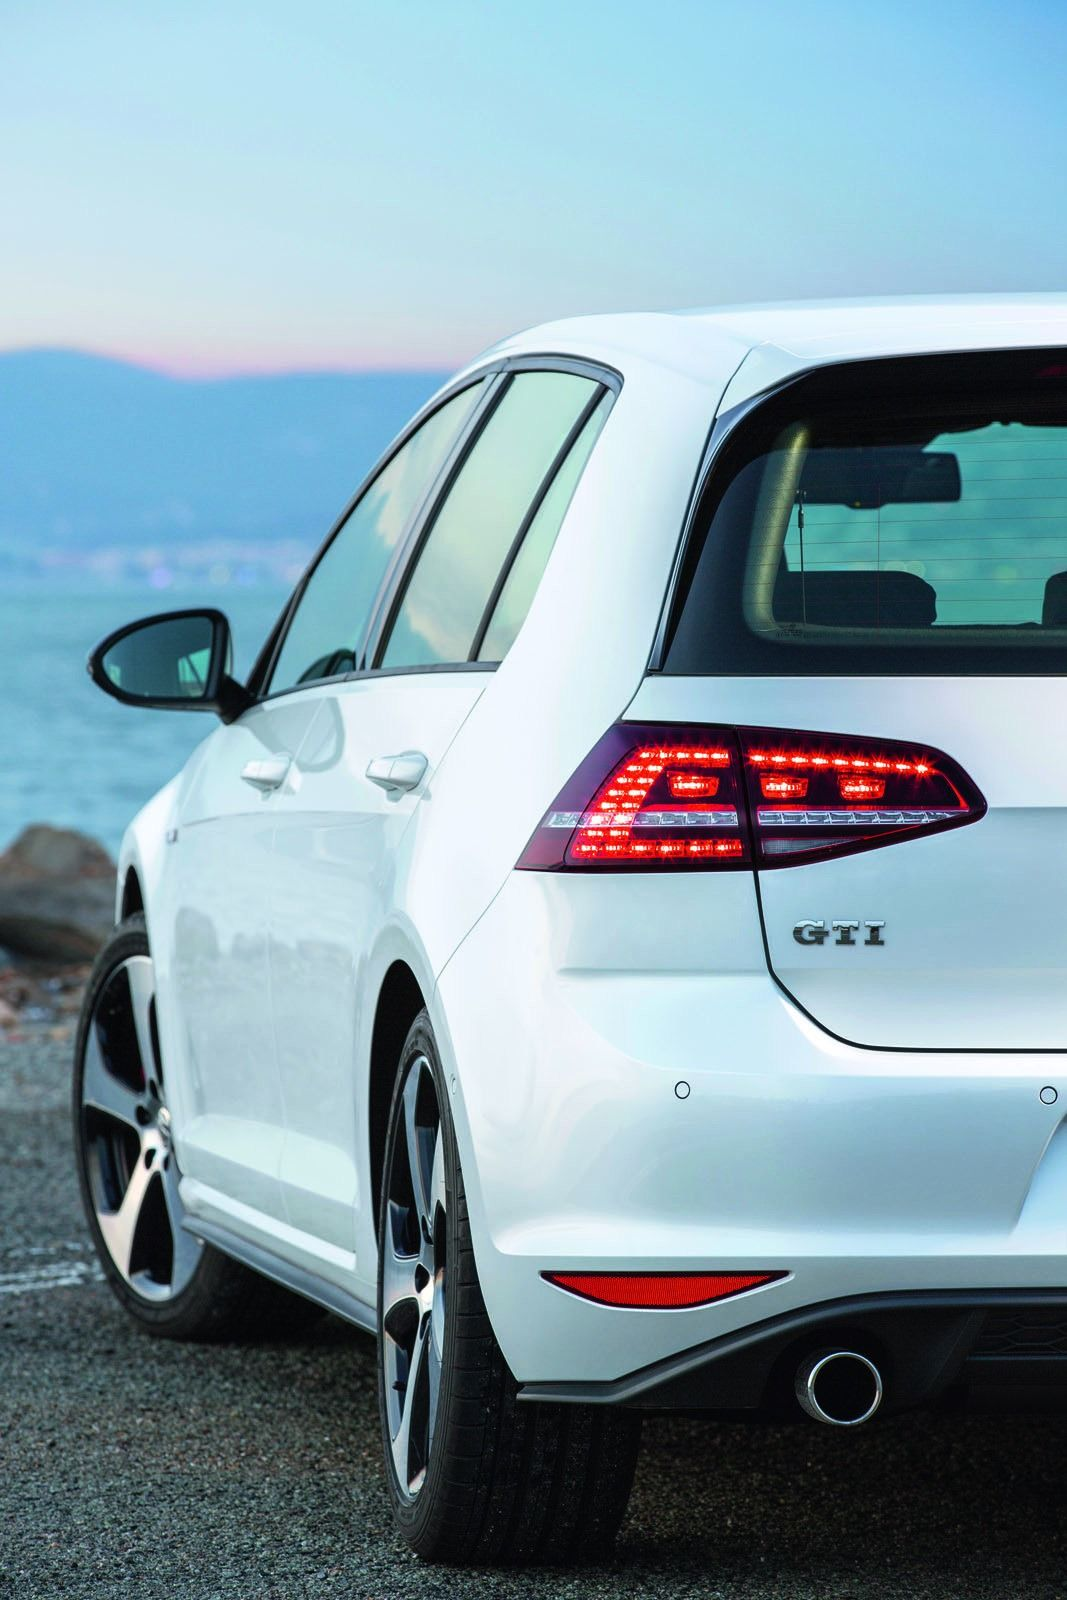 Vw golf r mk6 cars one love - Golf Mk7 Gti White My Current Car Probably The Best One I Ve